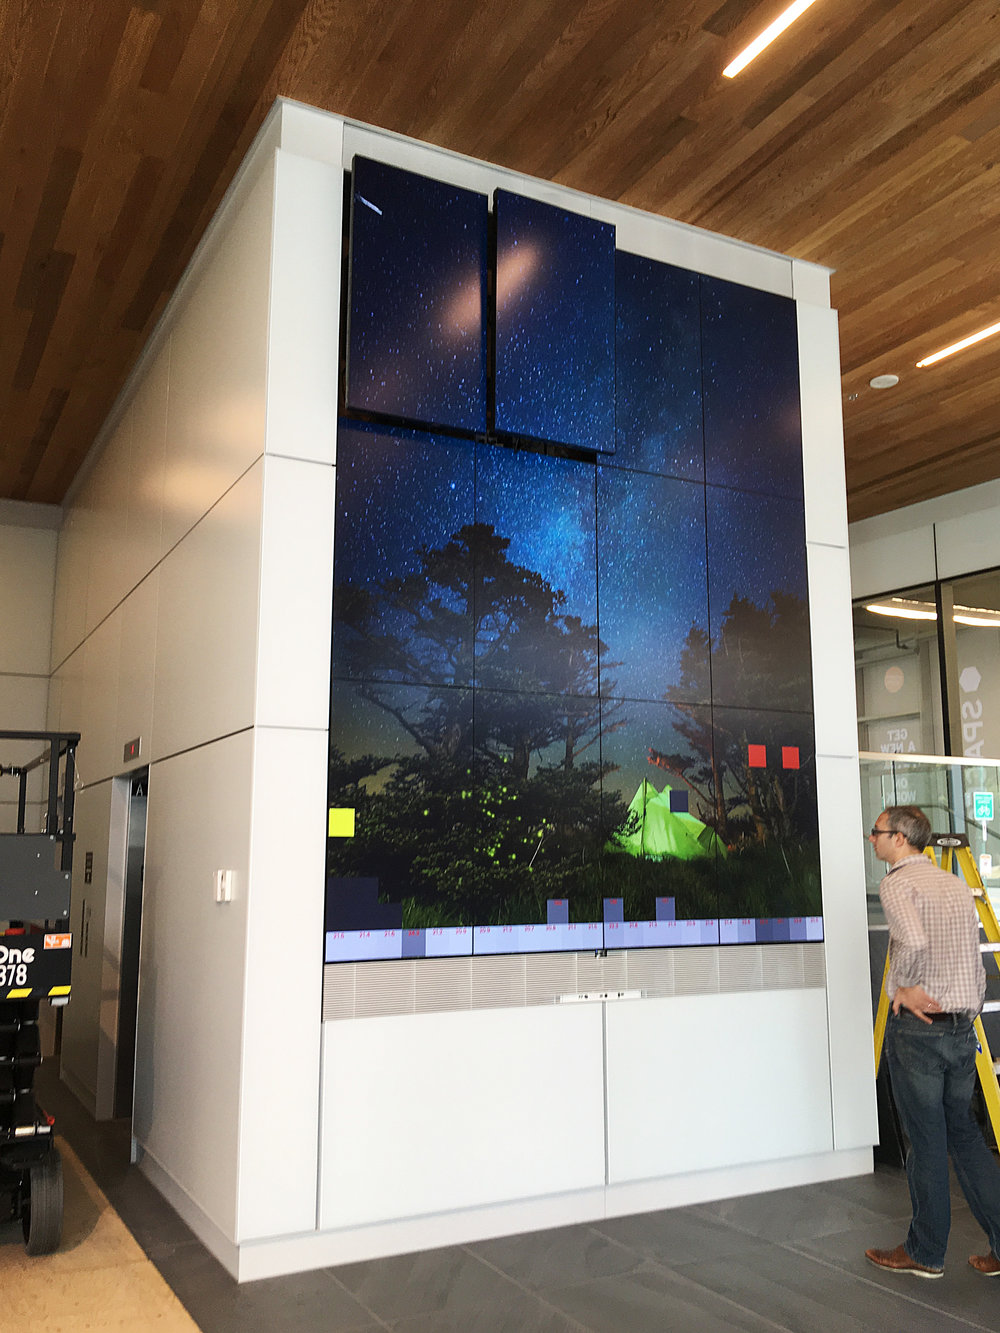 The screens in place, our team worked to configure and train the sensors as needed to pickup the desired area in front of the wall. A test pattern can be seen on screen allowing our staff to see literal feedback from teach sensor.